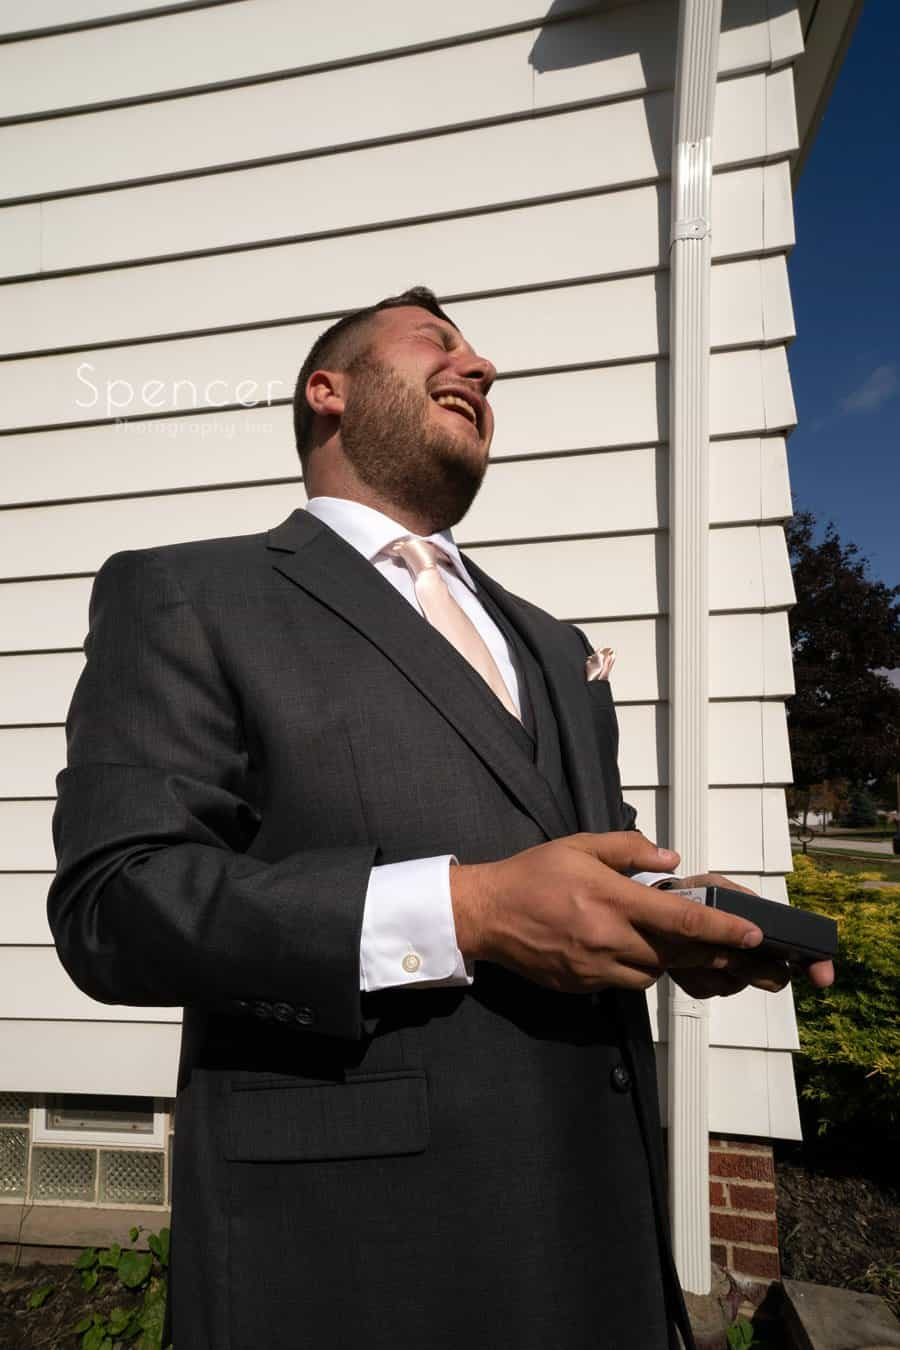 groom laughing on his wedding day in Mayfield Ohio